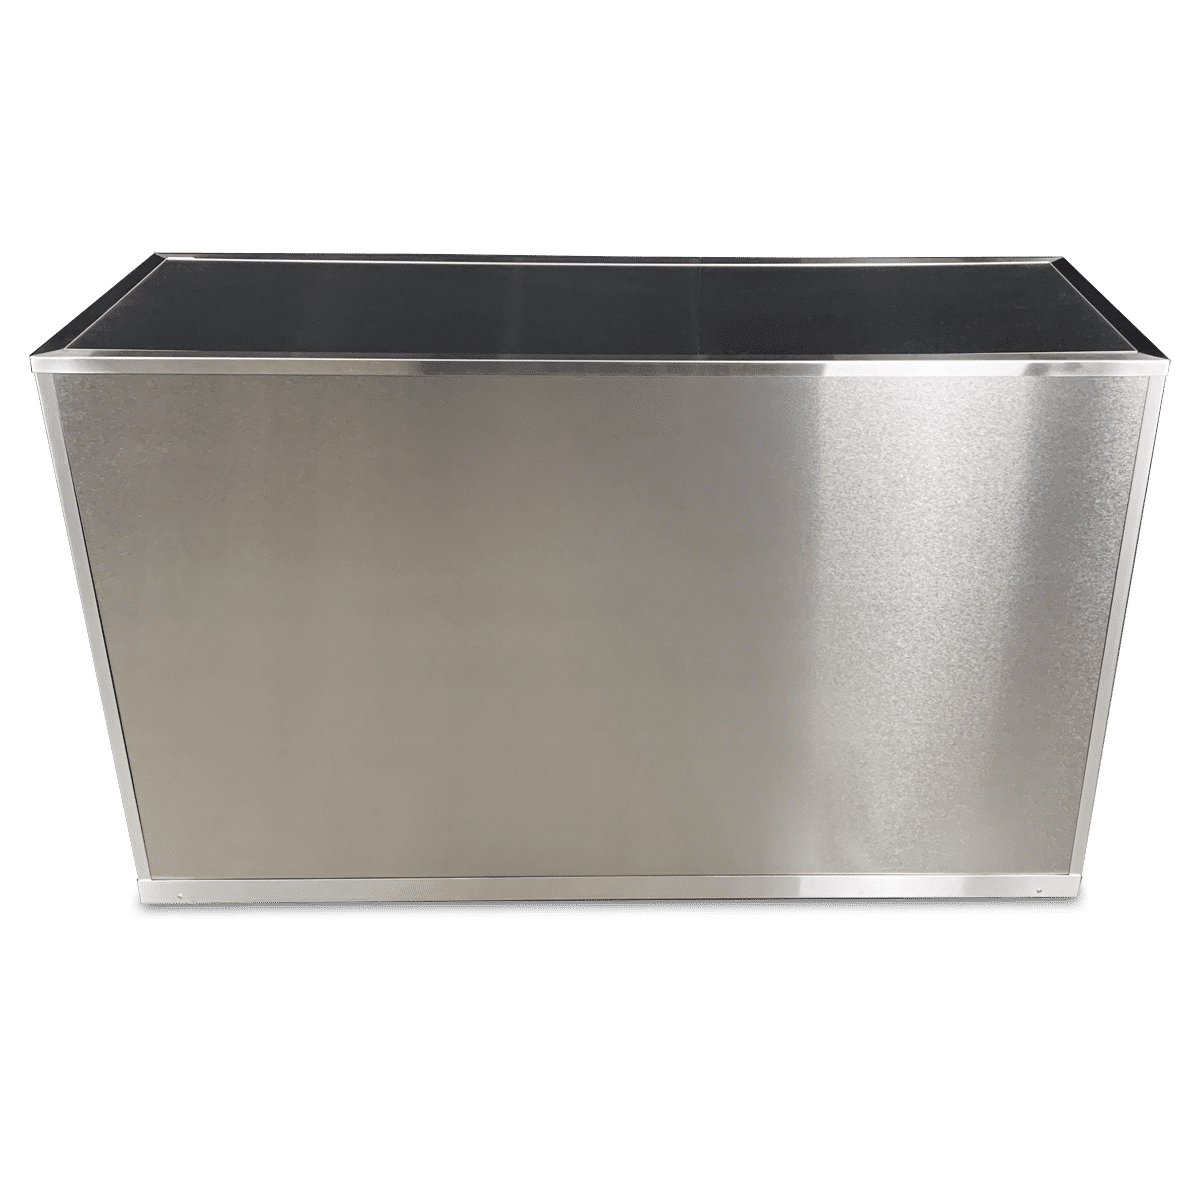 Brushed Stainless Steel Immitation Cover Panels For -1324